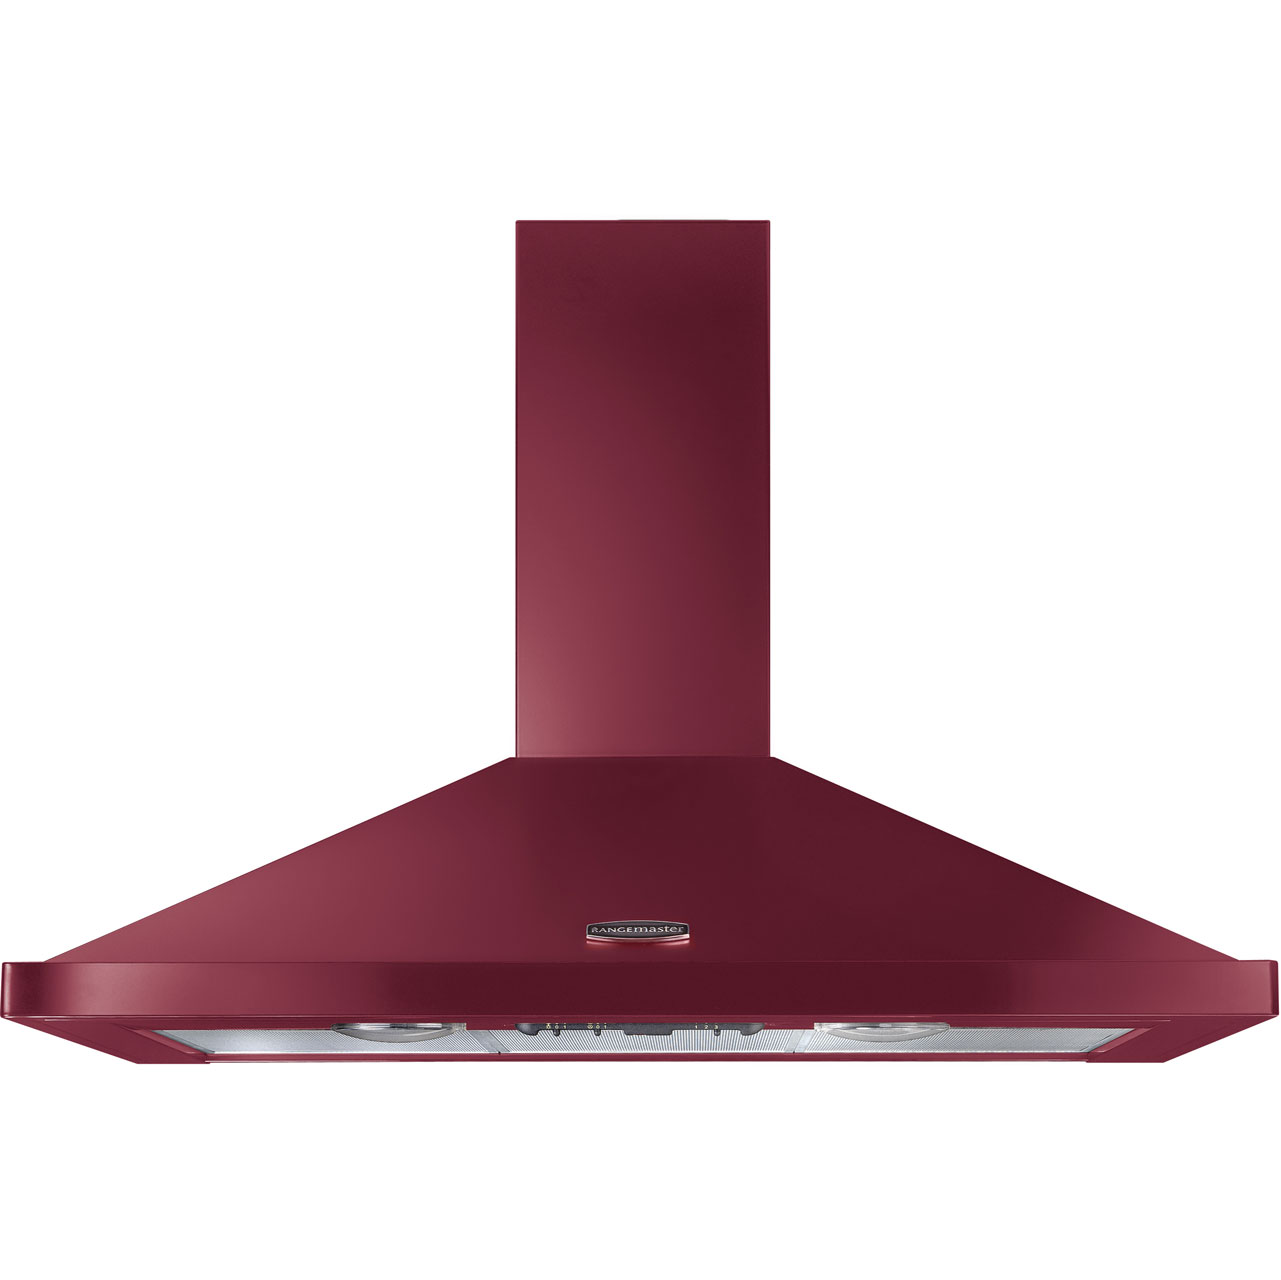 Rangemaster LEIHDC90CYC Integrated Cooker Hood in Cranberry  Chrome